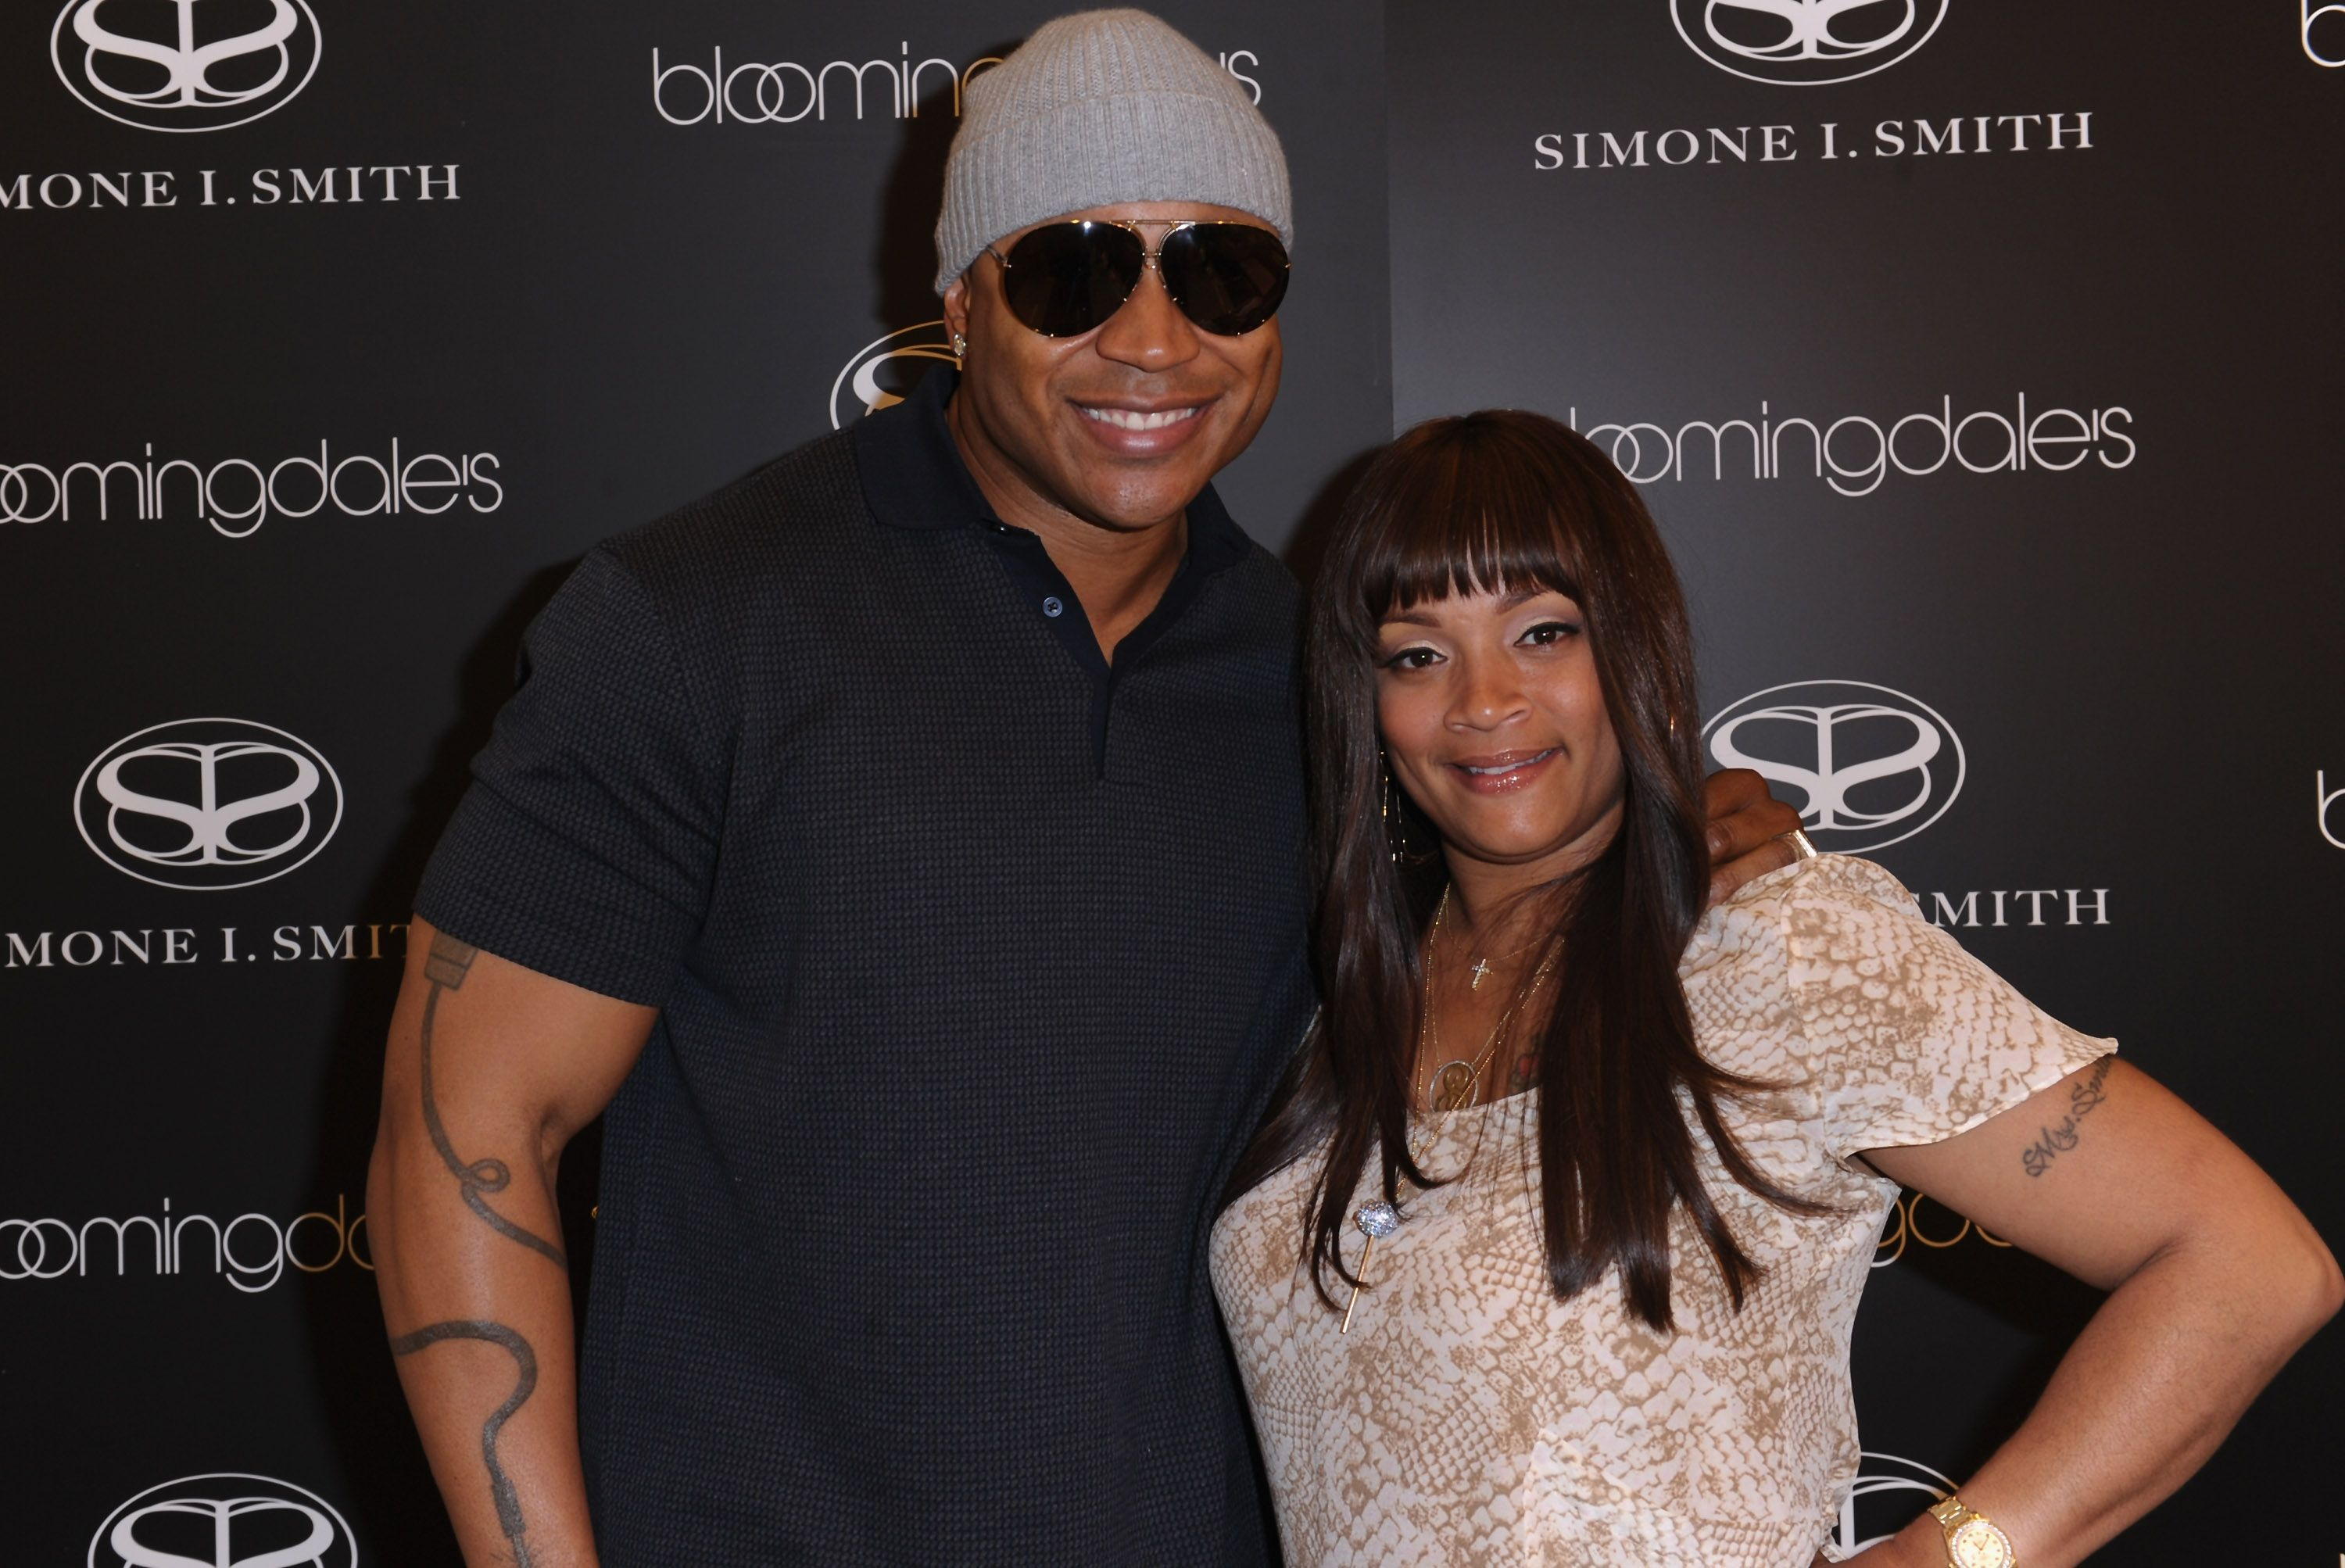 LL Cool J and Simone I. Smith during a personal appearance by the latter at Bloomingdale's on May 12, 2011 in Century City, California. | Source: Getty Images